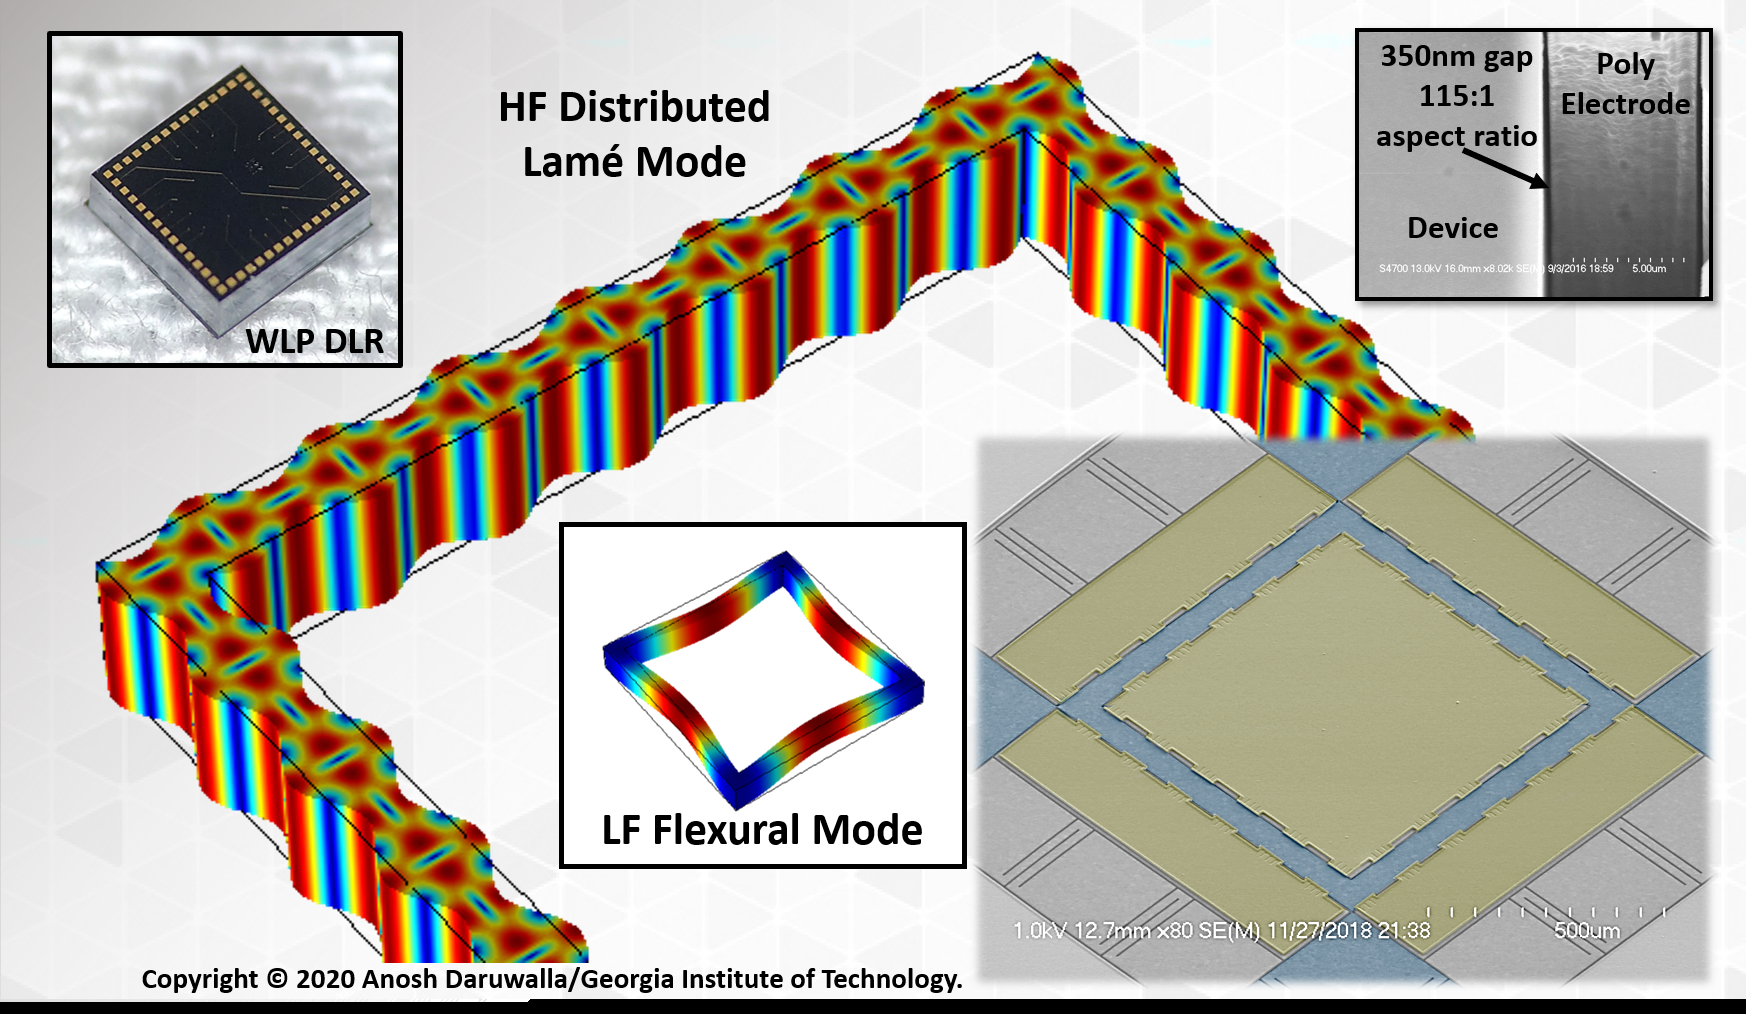 Animation of the high frequency distributed Lame mode and the low frequency flexural mode from the same structure, which can be used for high frequency temperature-stable oscillators. Inset figures show a colorized SEM image, wafer-level packaged device die, and a cross section of the capacitive nano-gaps enabled by the HARPSS process.